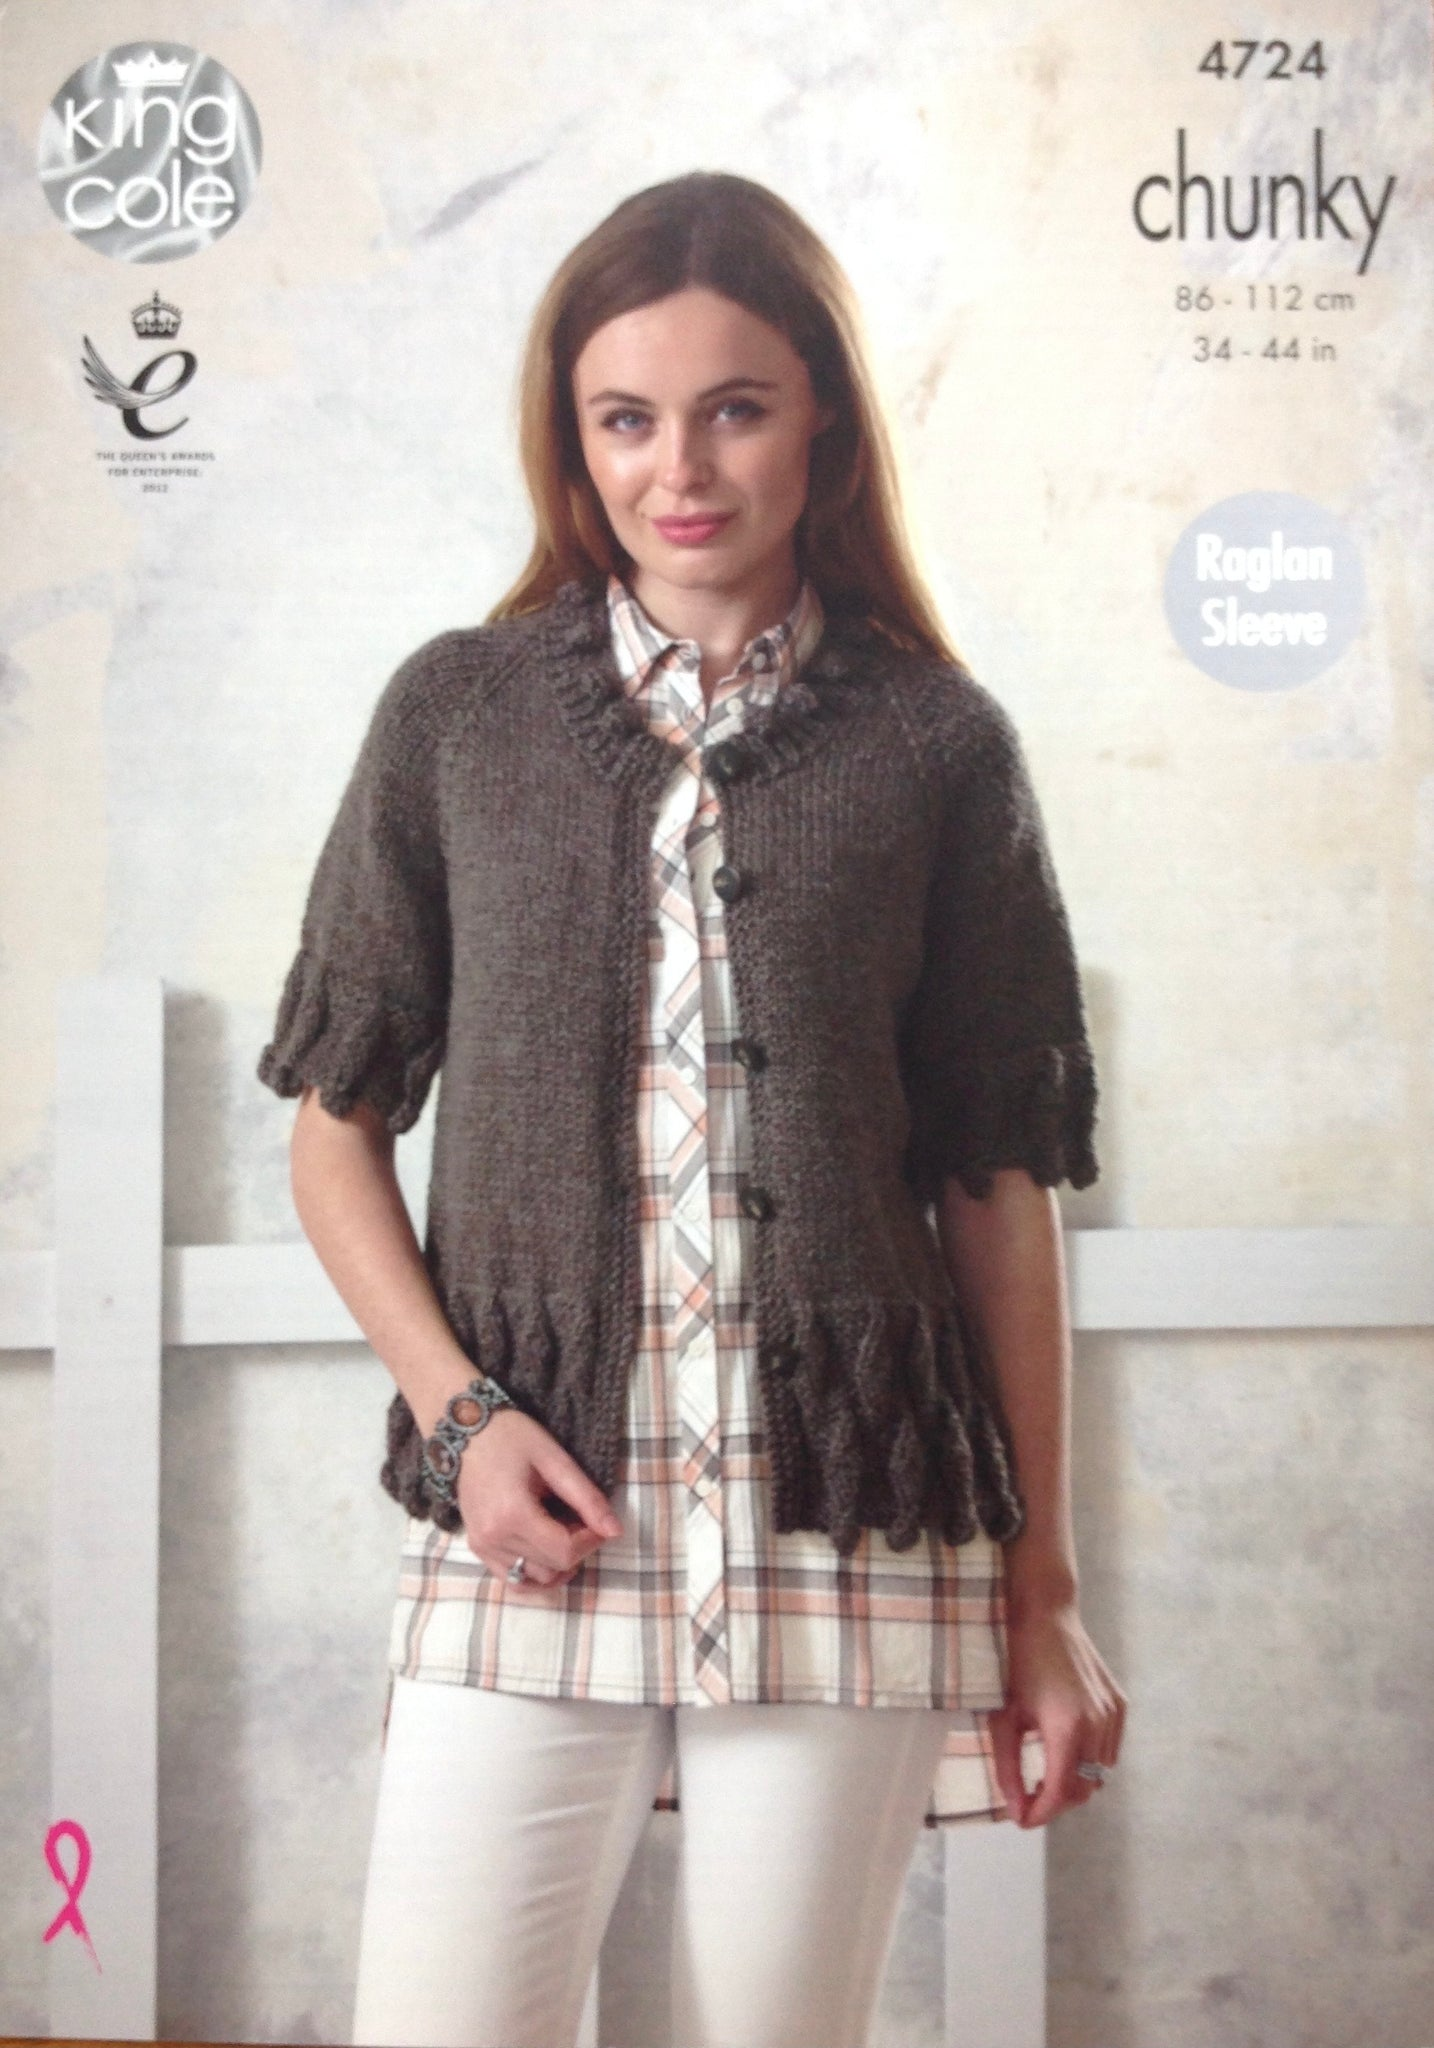 4724 King Cole chunky ladies tunic and cardigan knitting pattern